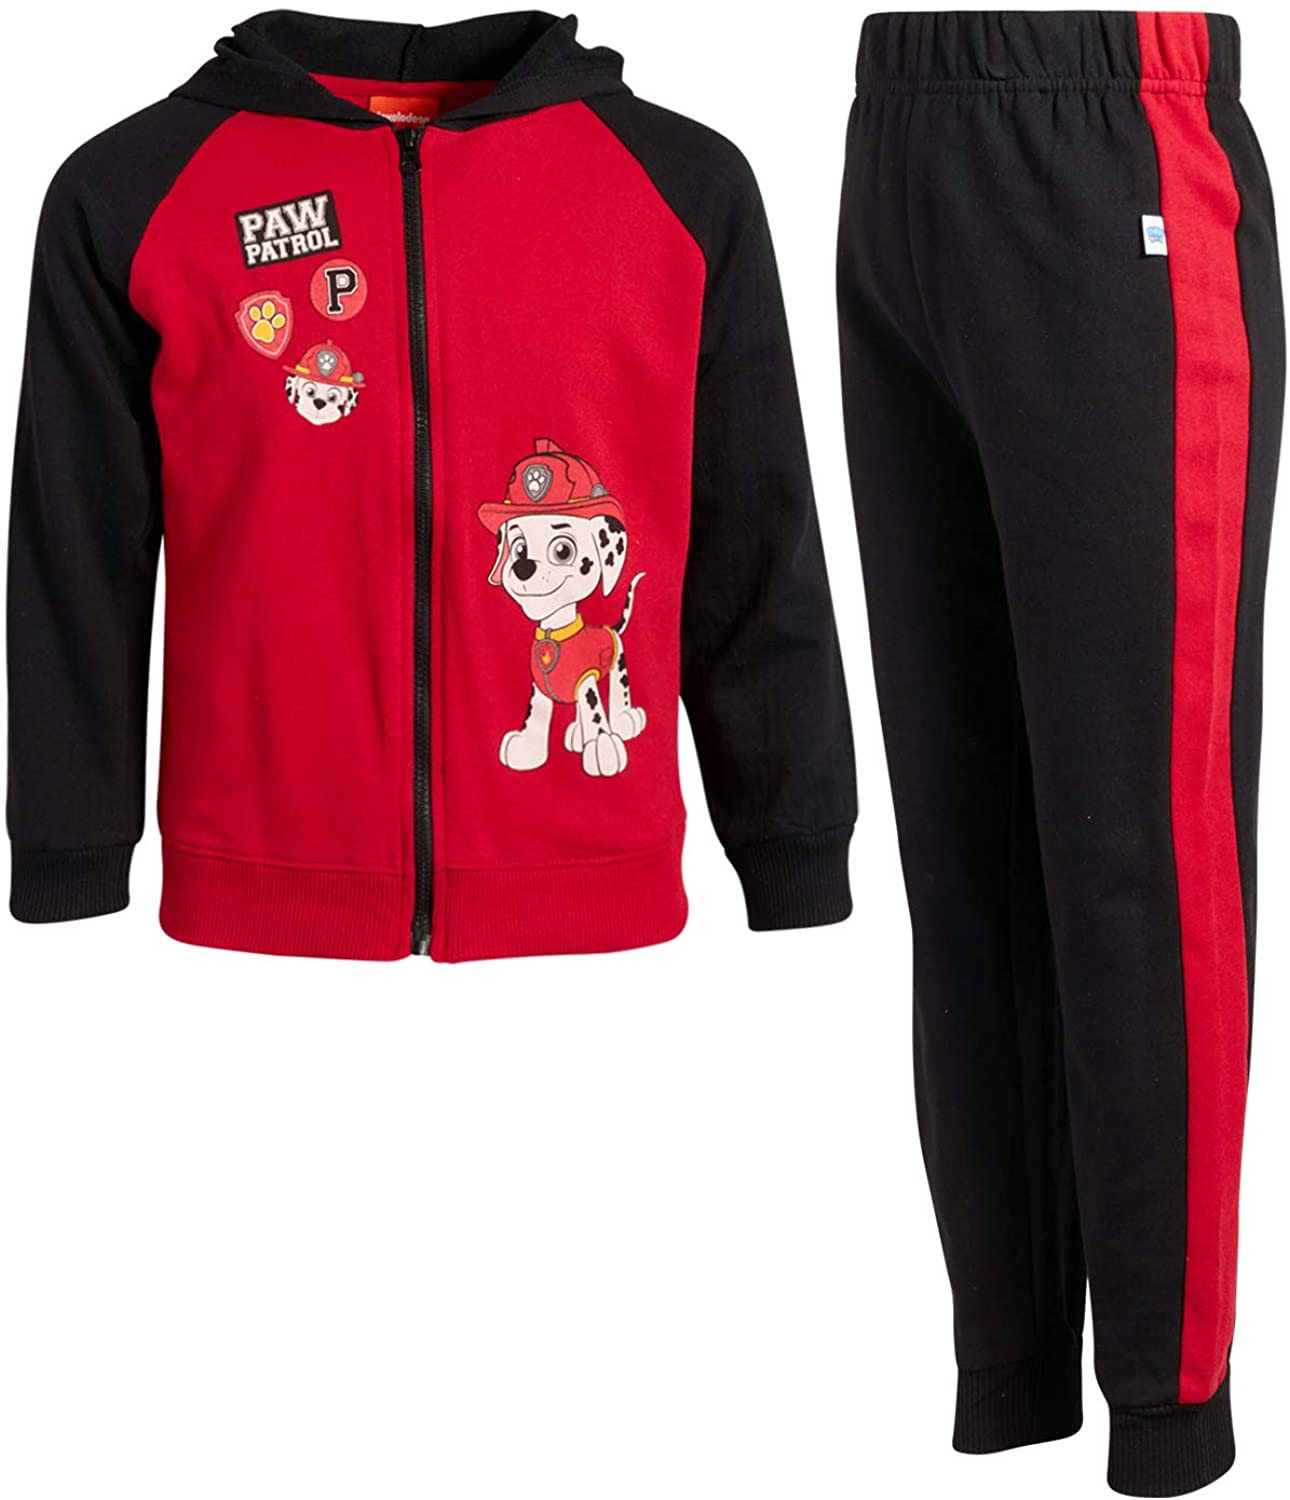 Nickelodeon Boys Paw Patrol 2-Piece Jogger Set - Fleece Zip-up Hoodie and Jogger Pant